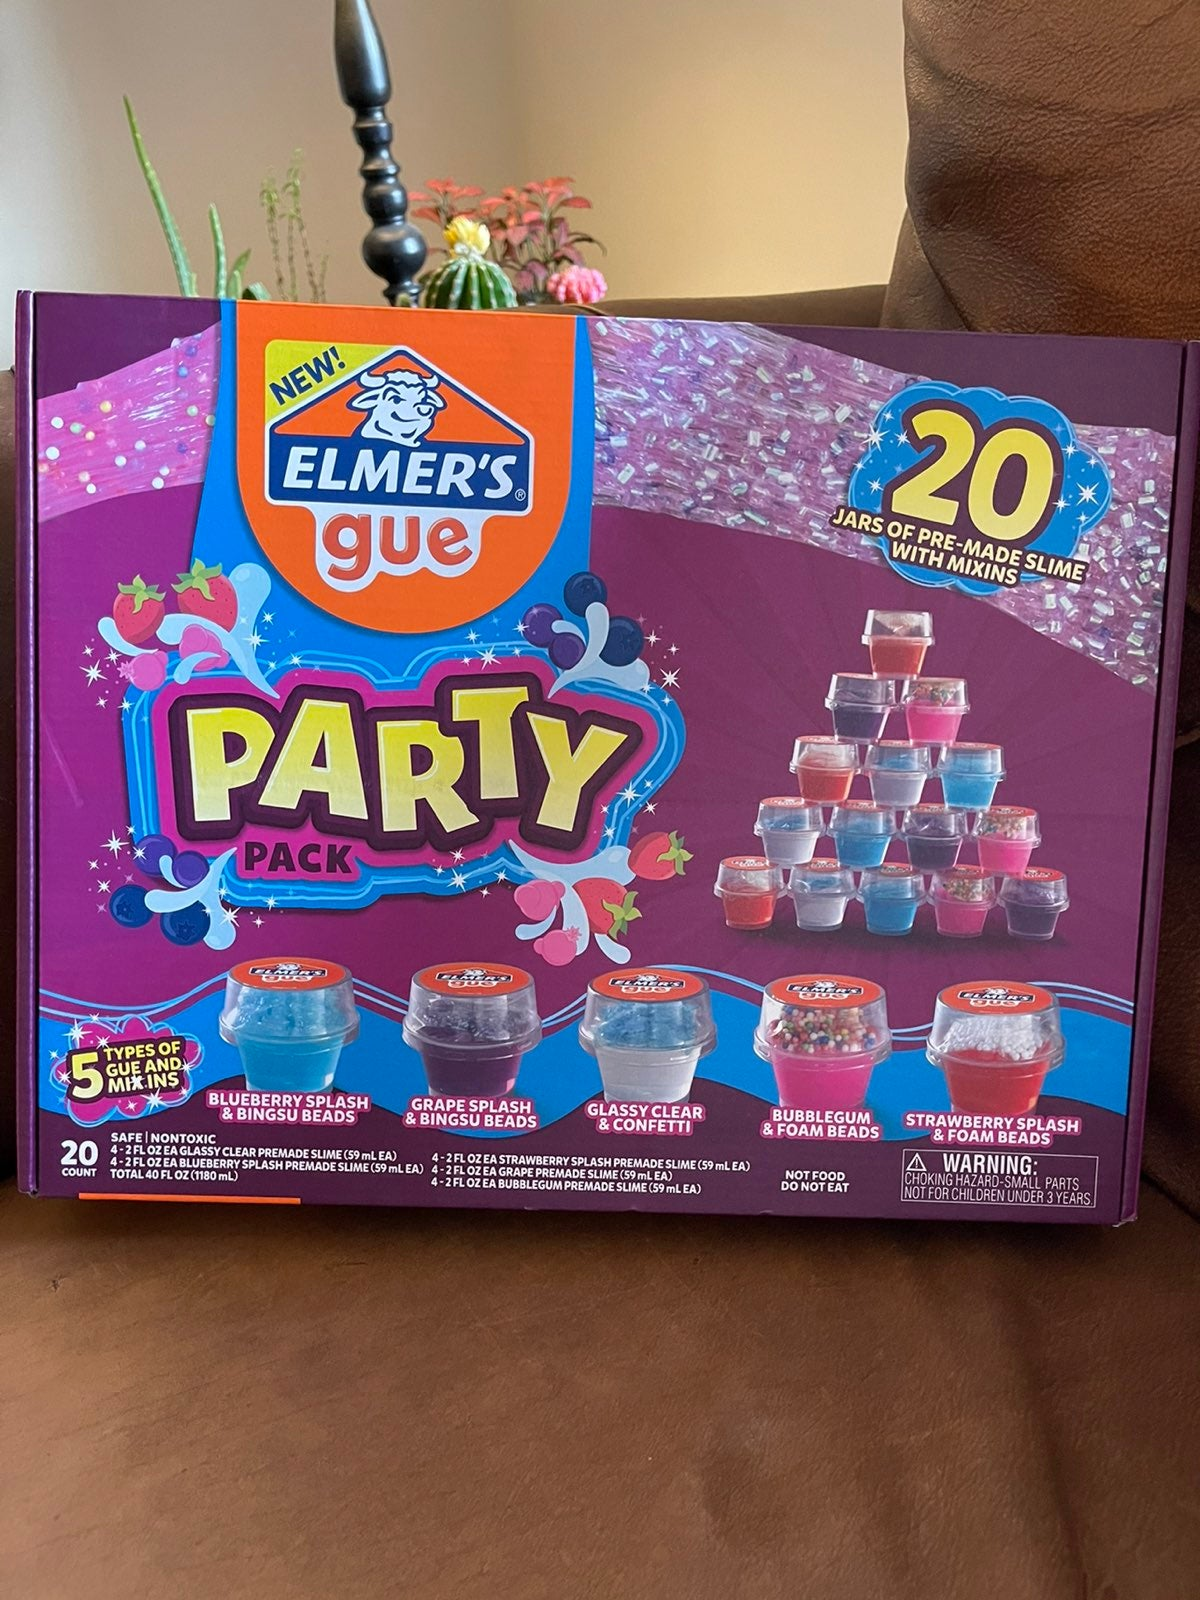 Nwt elmers gue slime party pack!